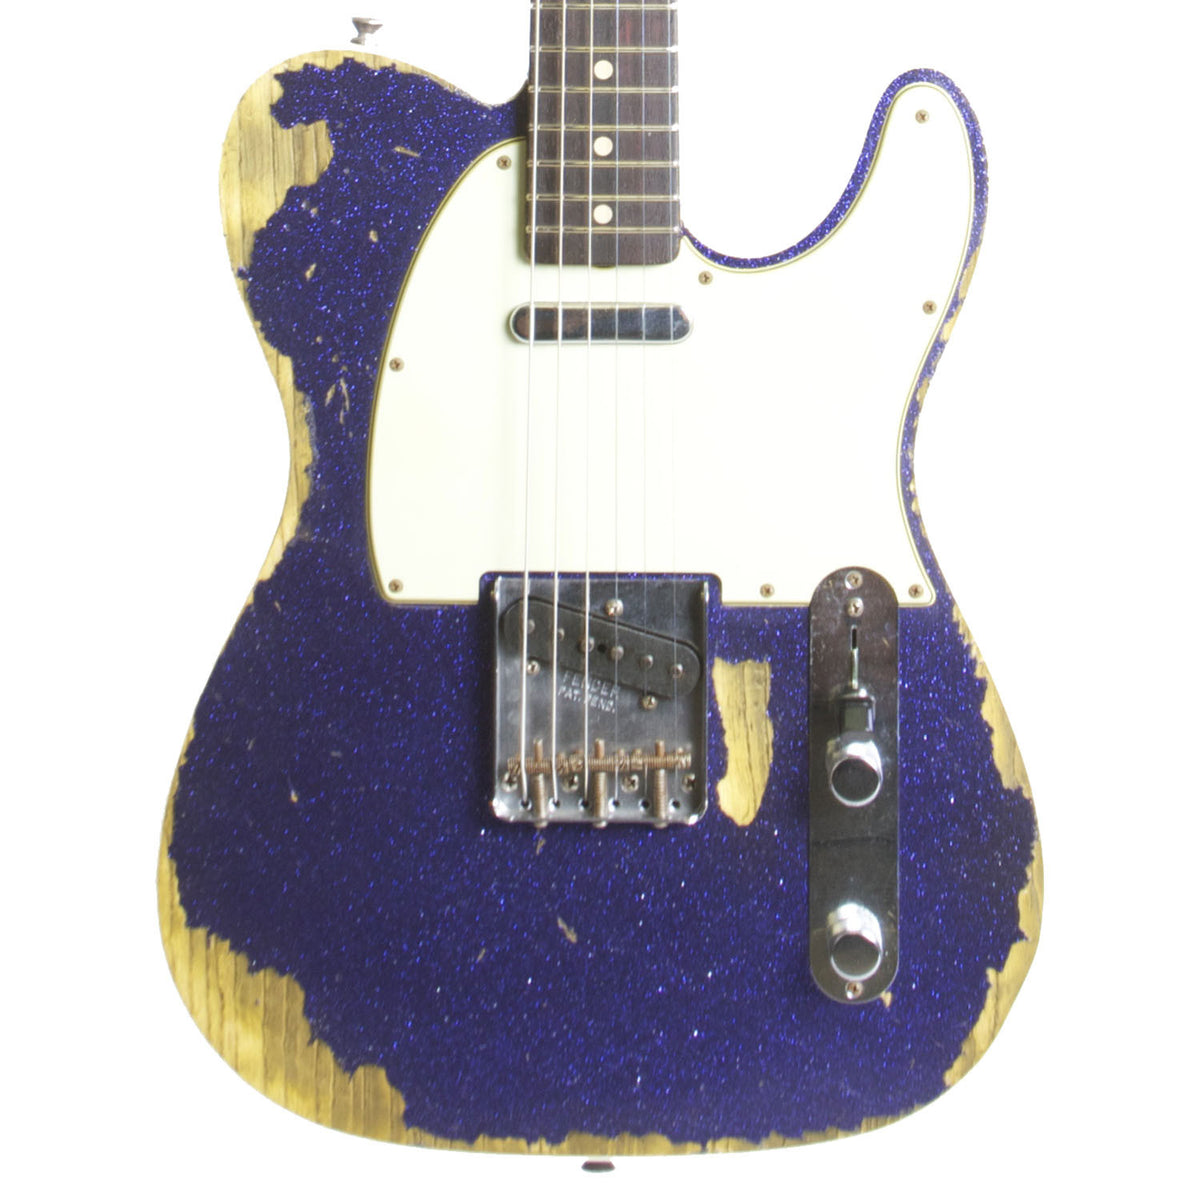 FENDER CUSTOM SHOP PURPLE SPARKLE TELECASTER CUSTOM RELIC - Garrett Park Guitars  - 2